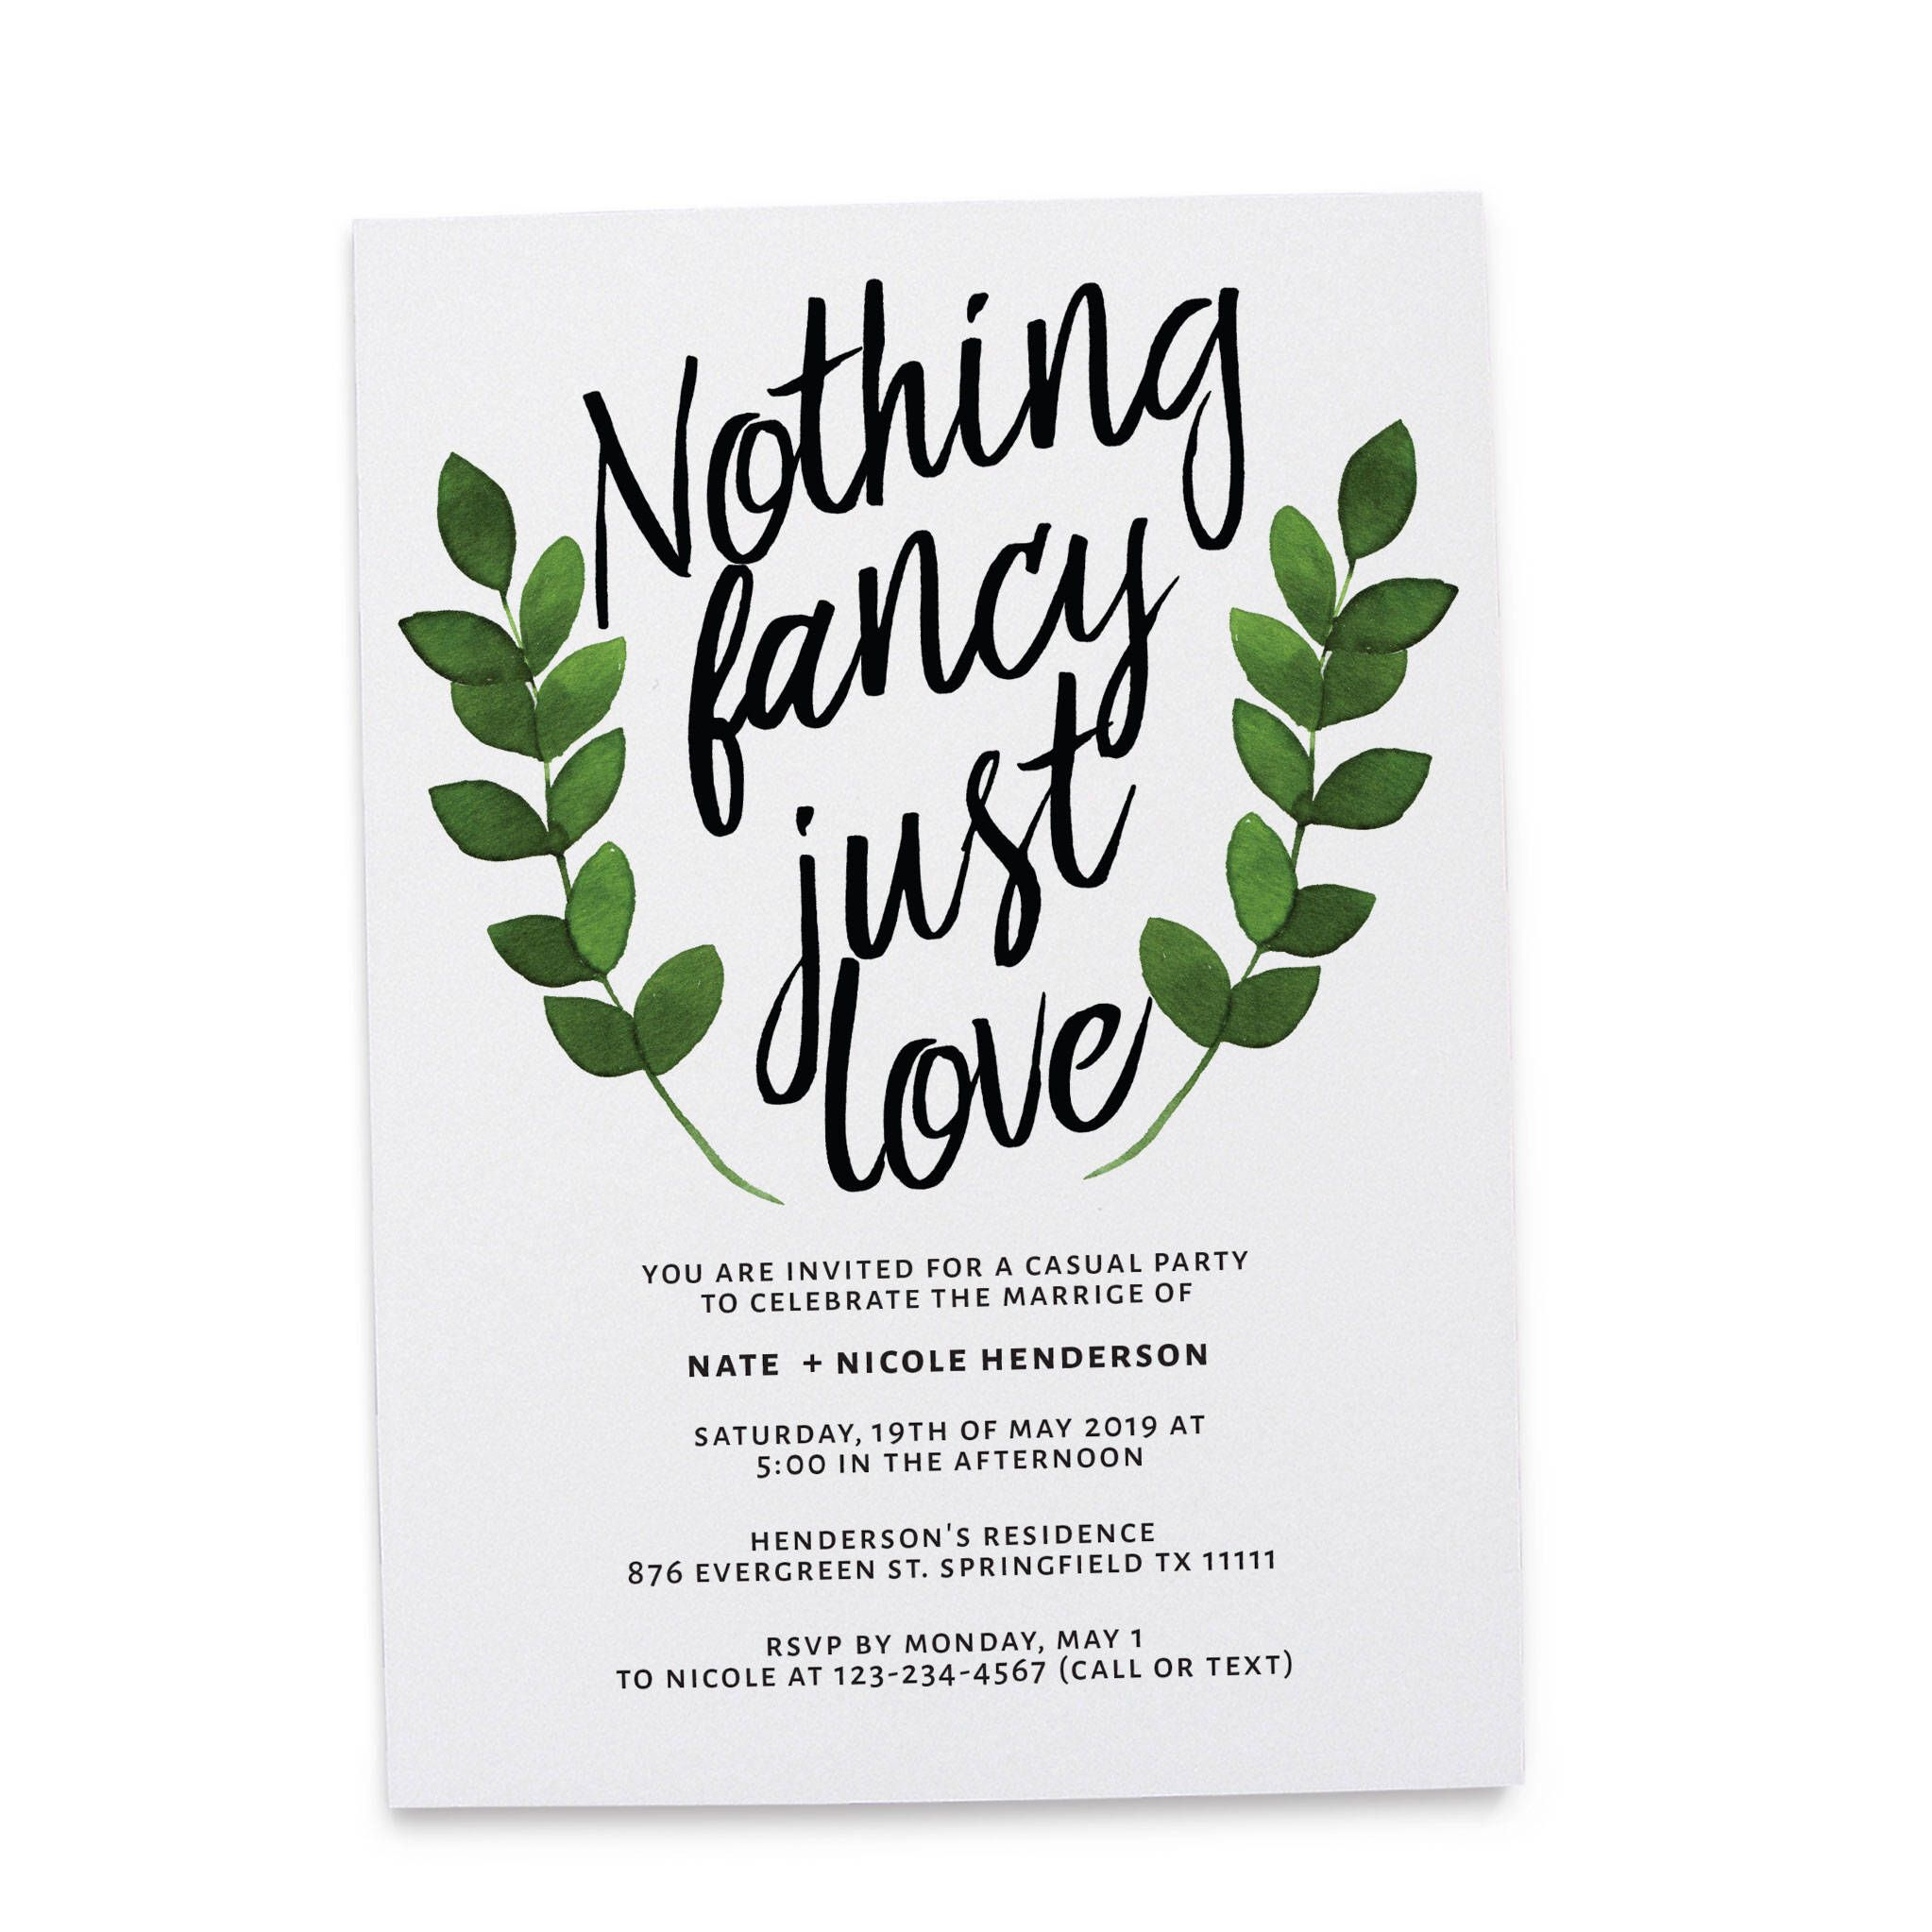 Nothing Fancy Just Love elopement wedding reception invitation ...